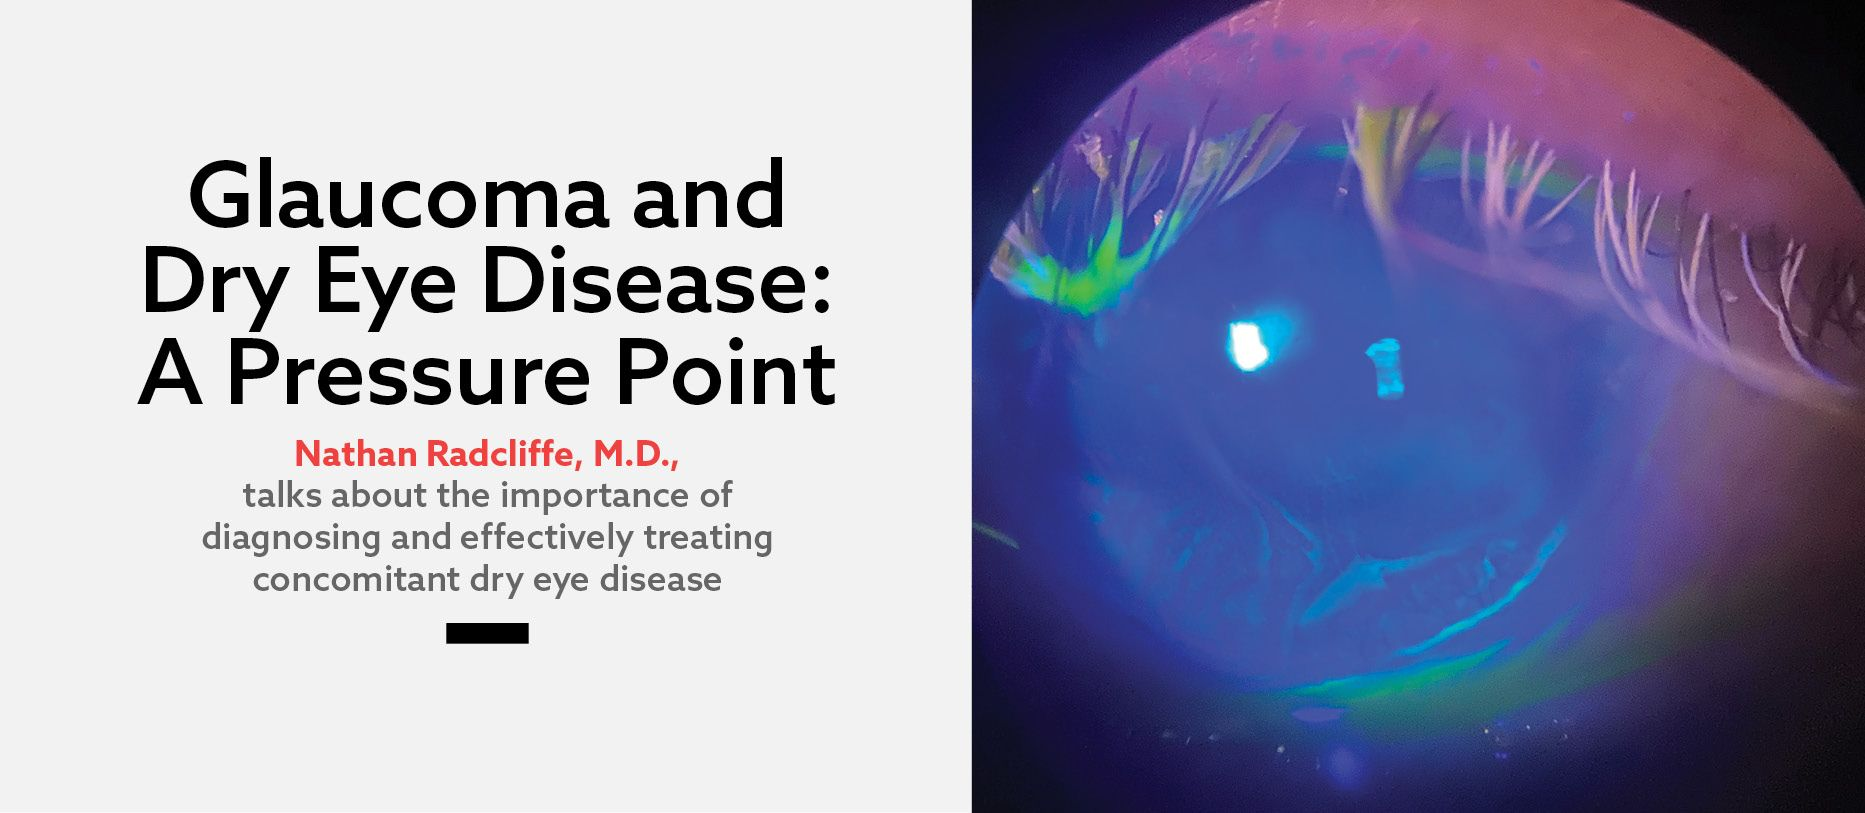 Glaucoma and Dry Eye Disease: A <i>Pressure</i> Point